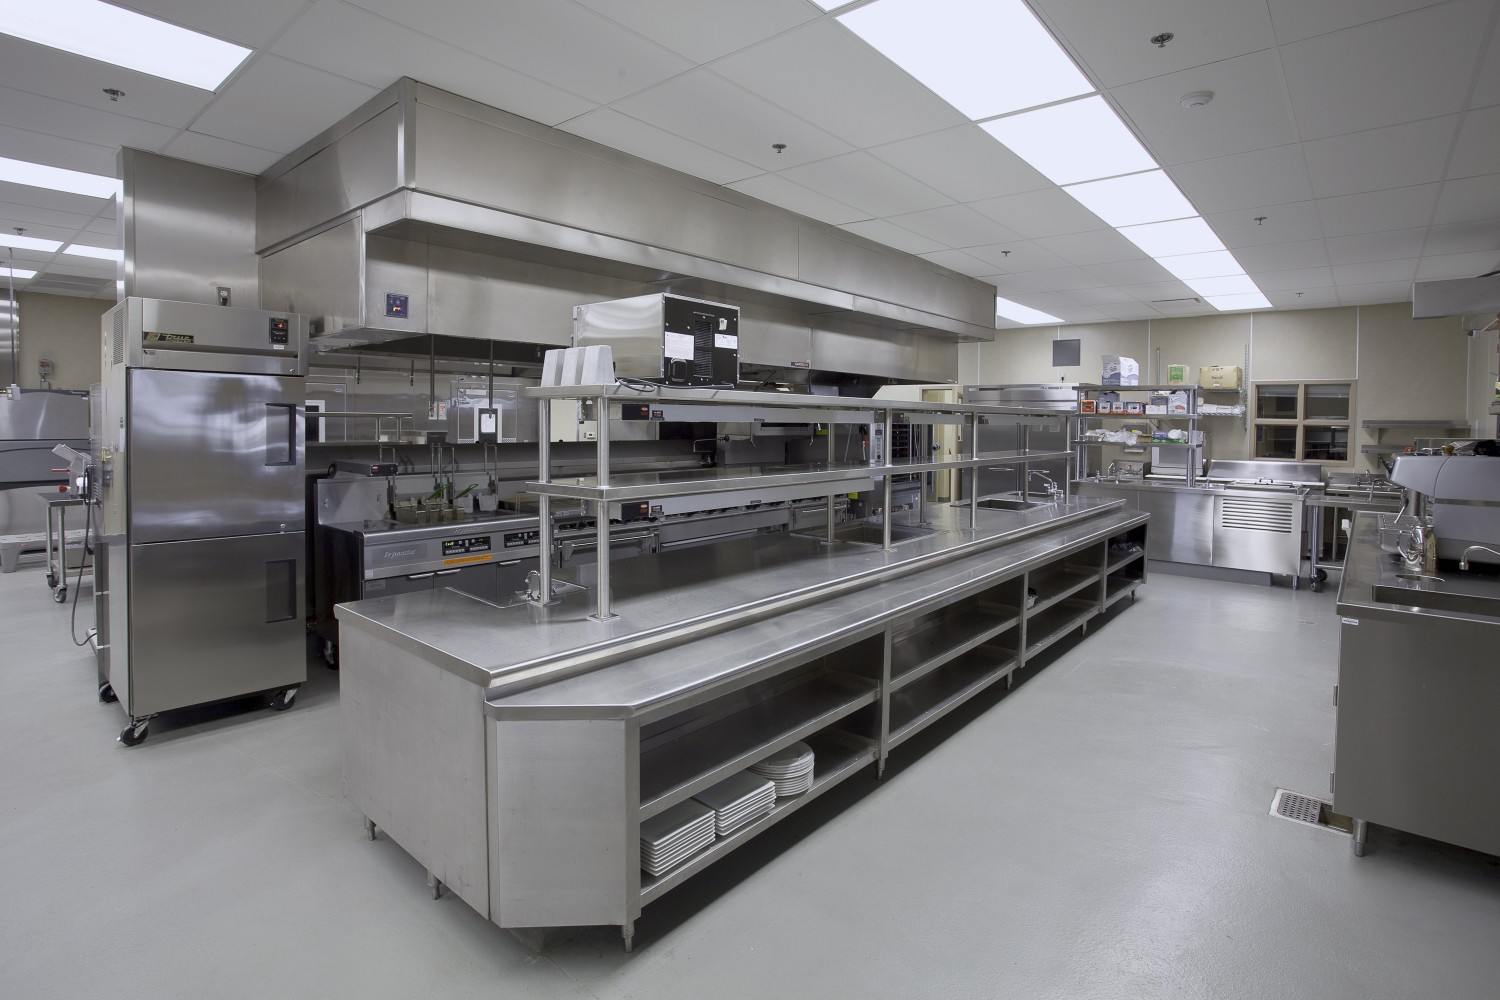 food industry flooring commercial kitchen flooring food industry flooring by armorpoxy large commercial kitchen grey floor